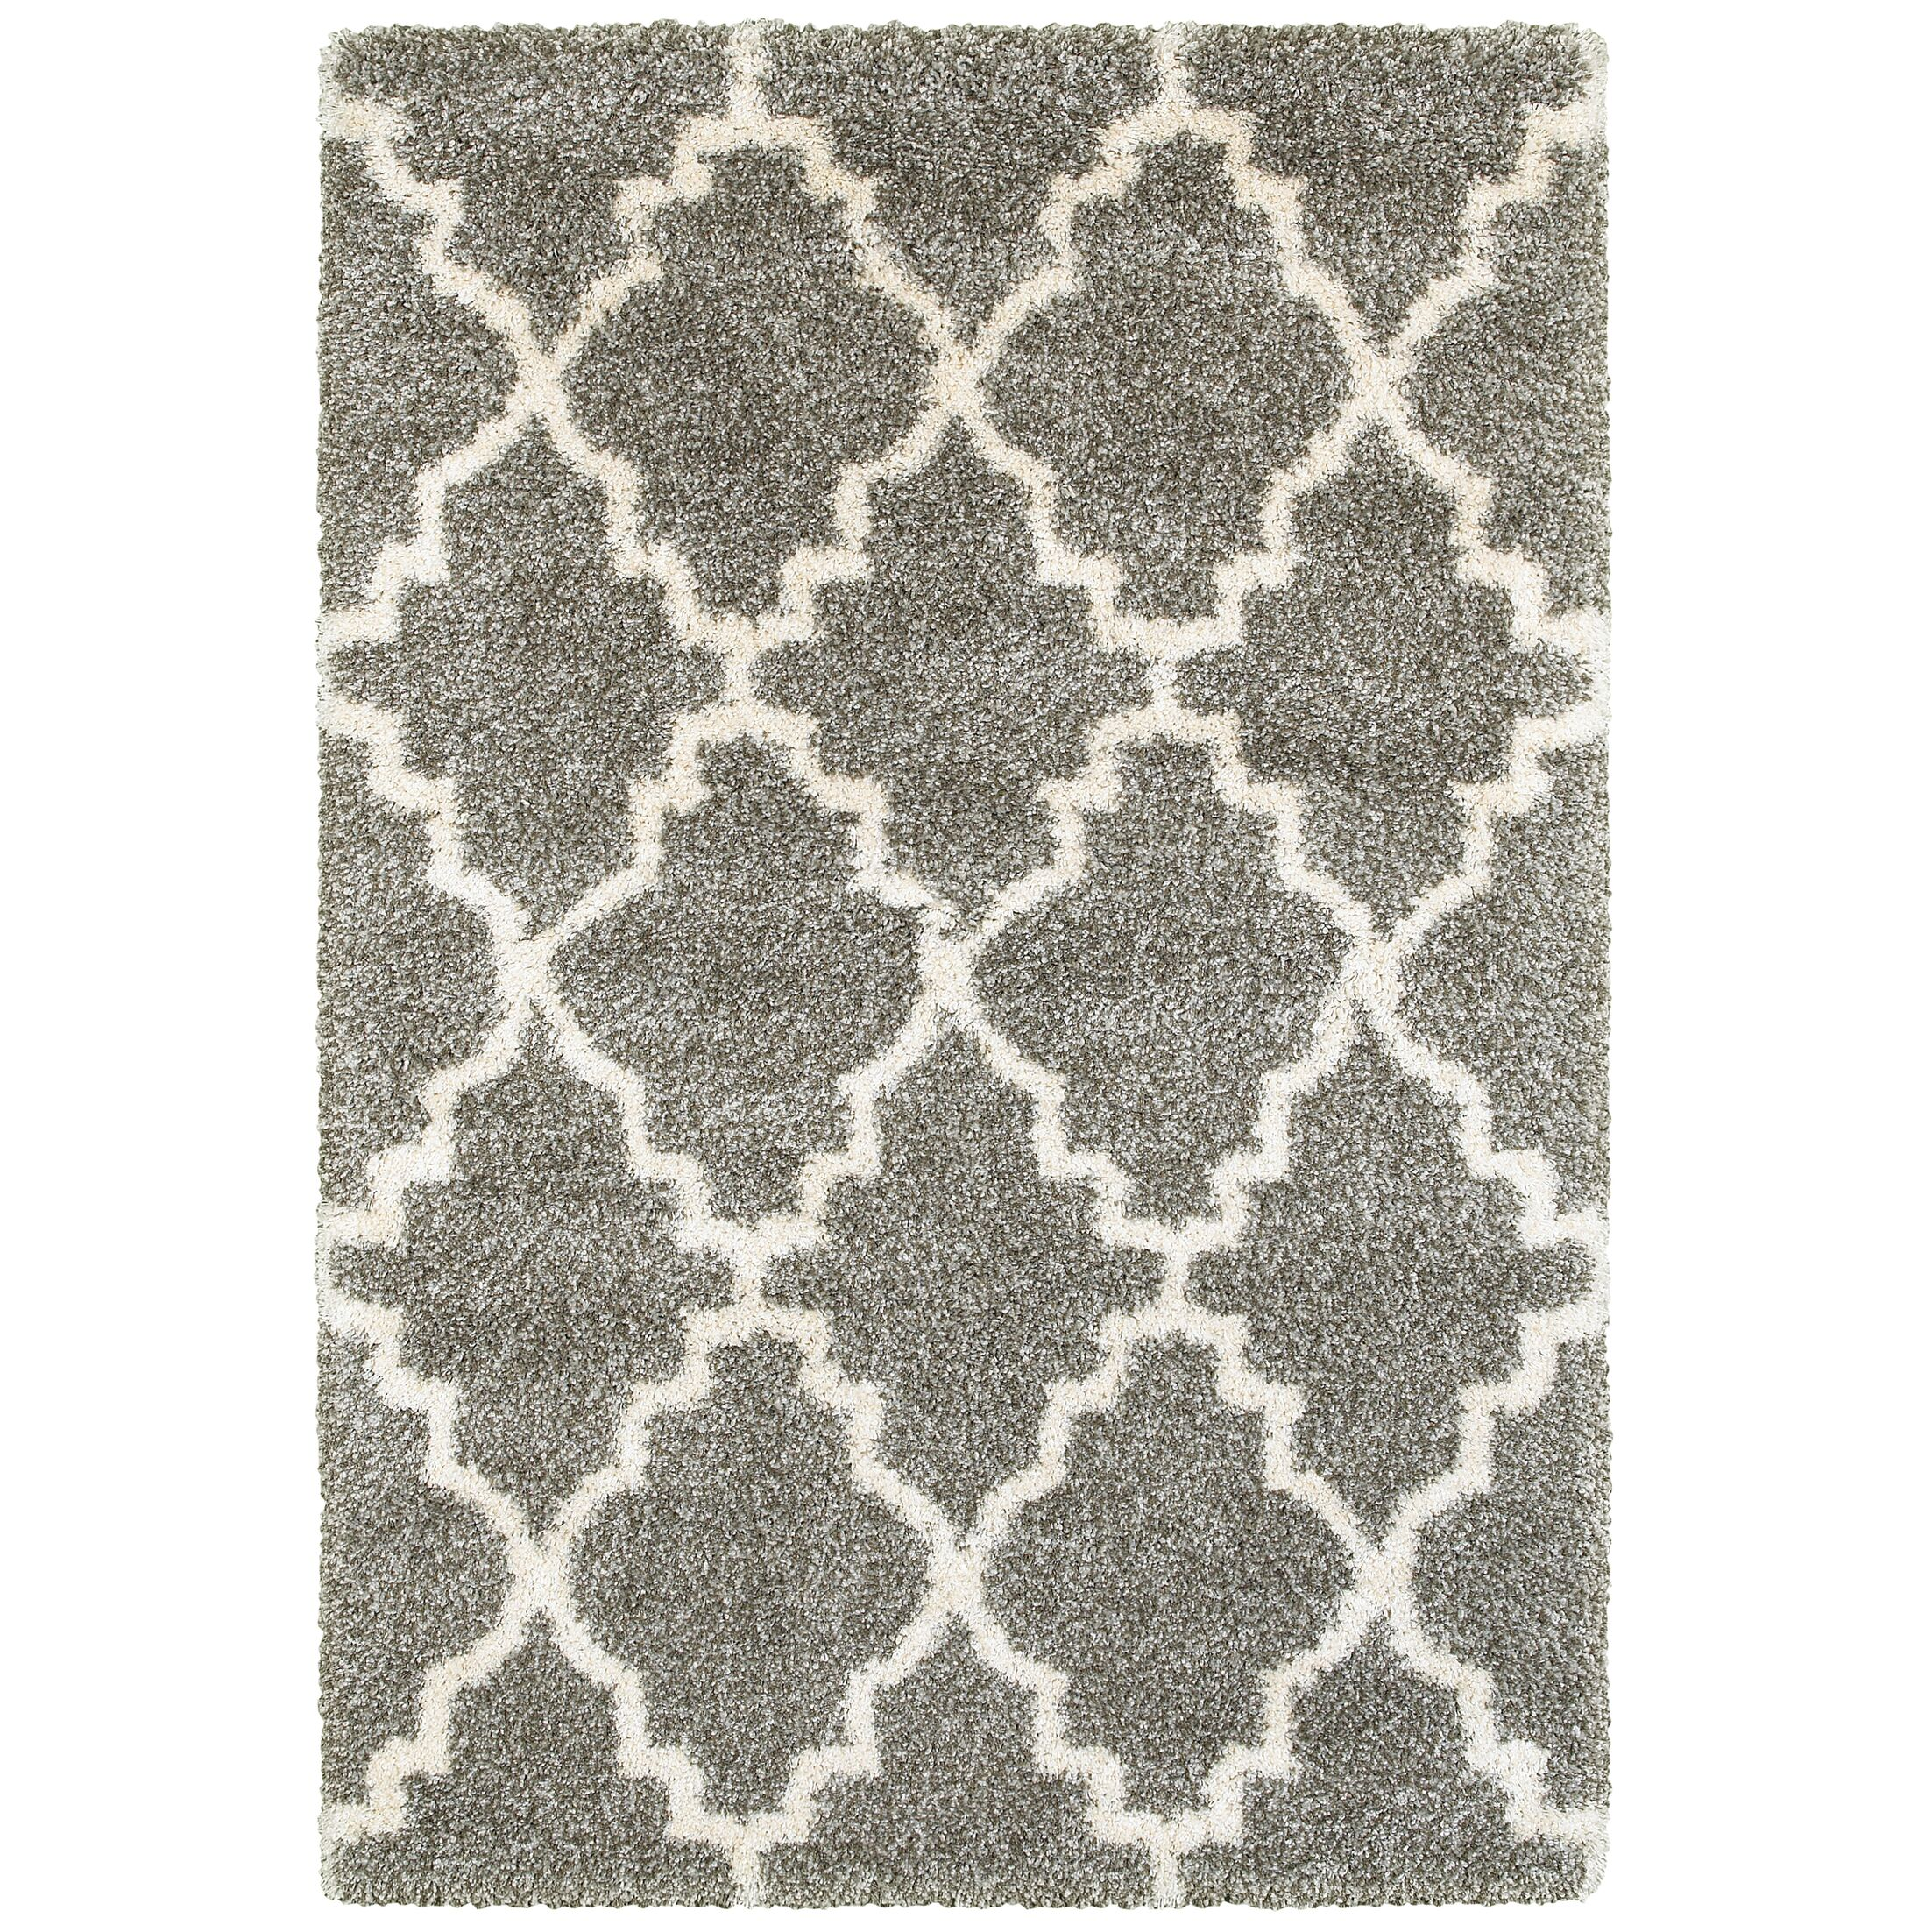 Sayer Gray/Ivory Area Rug Size: Rectangle 6'7